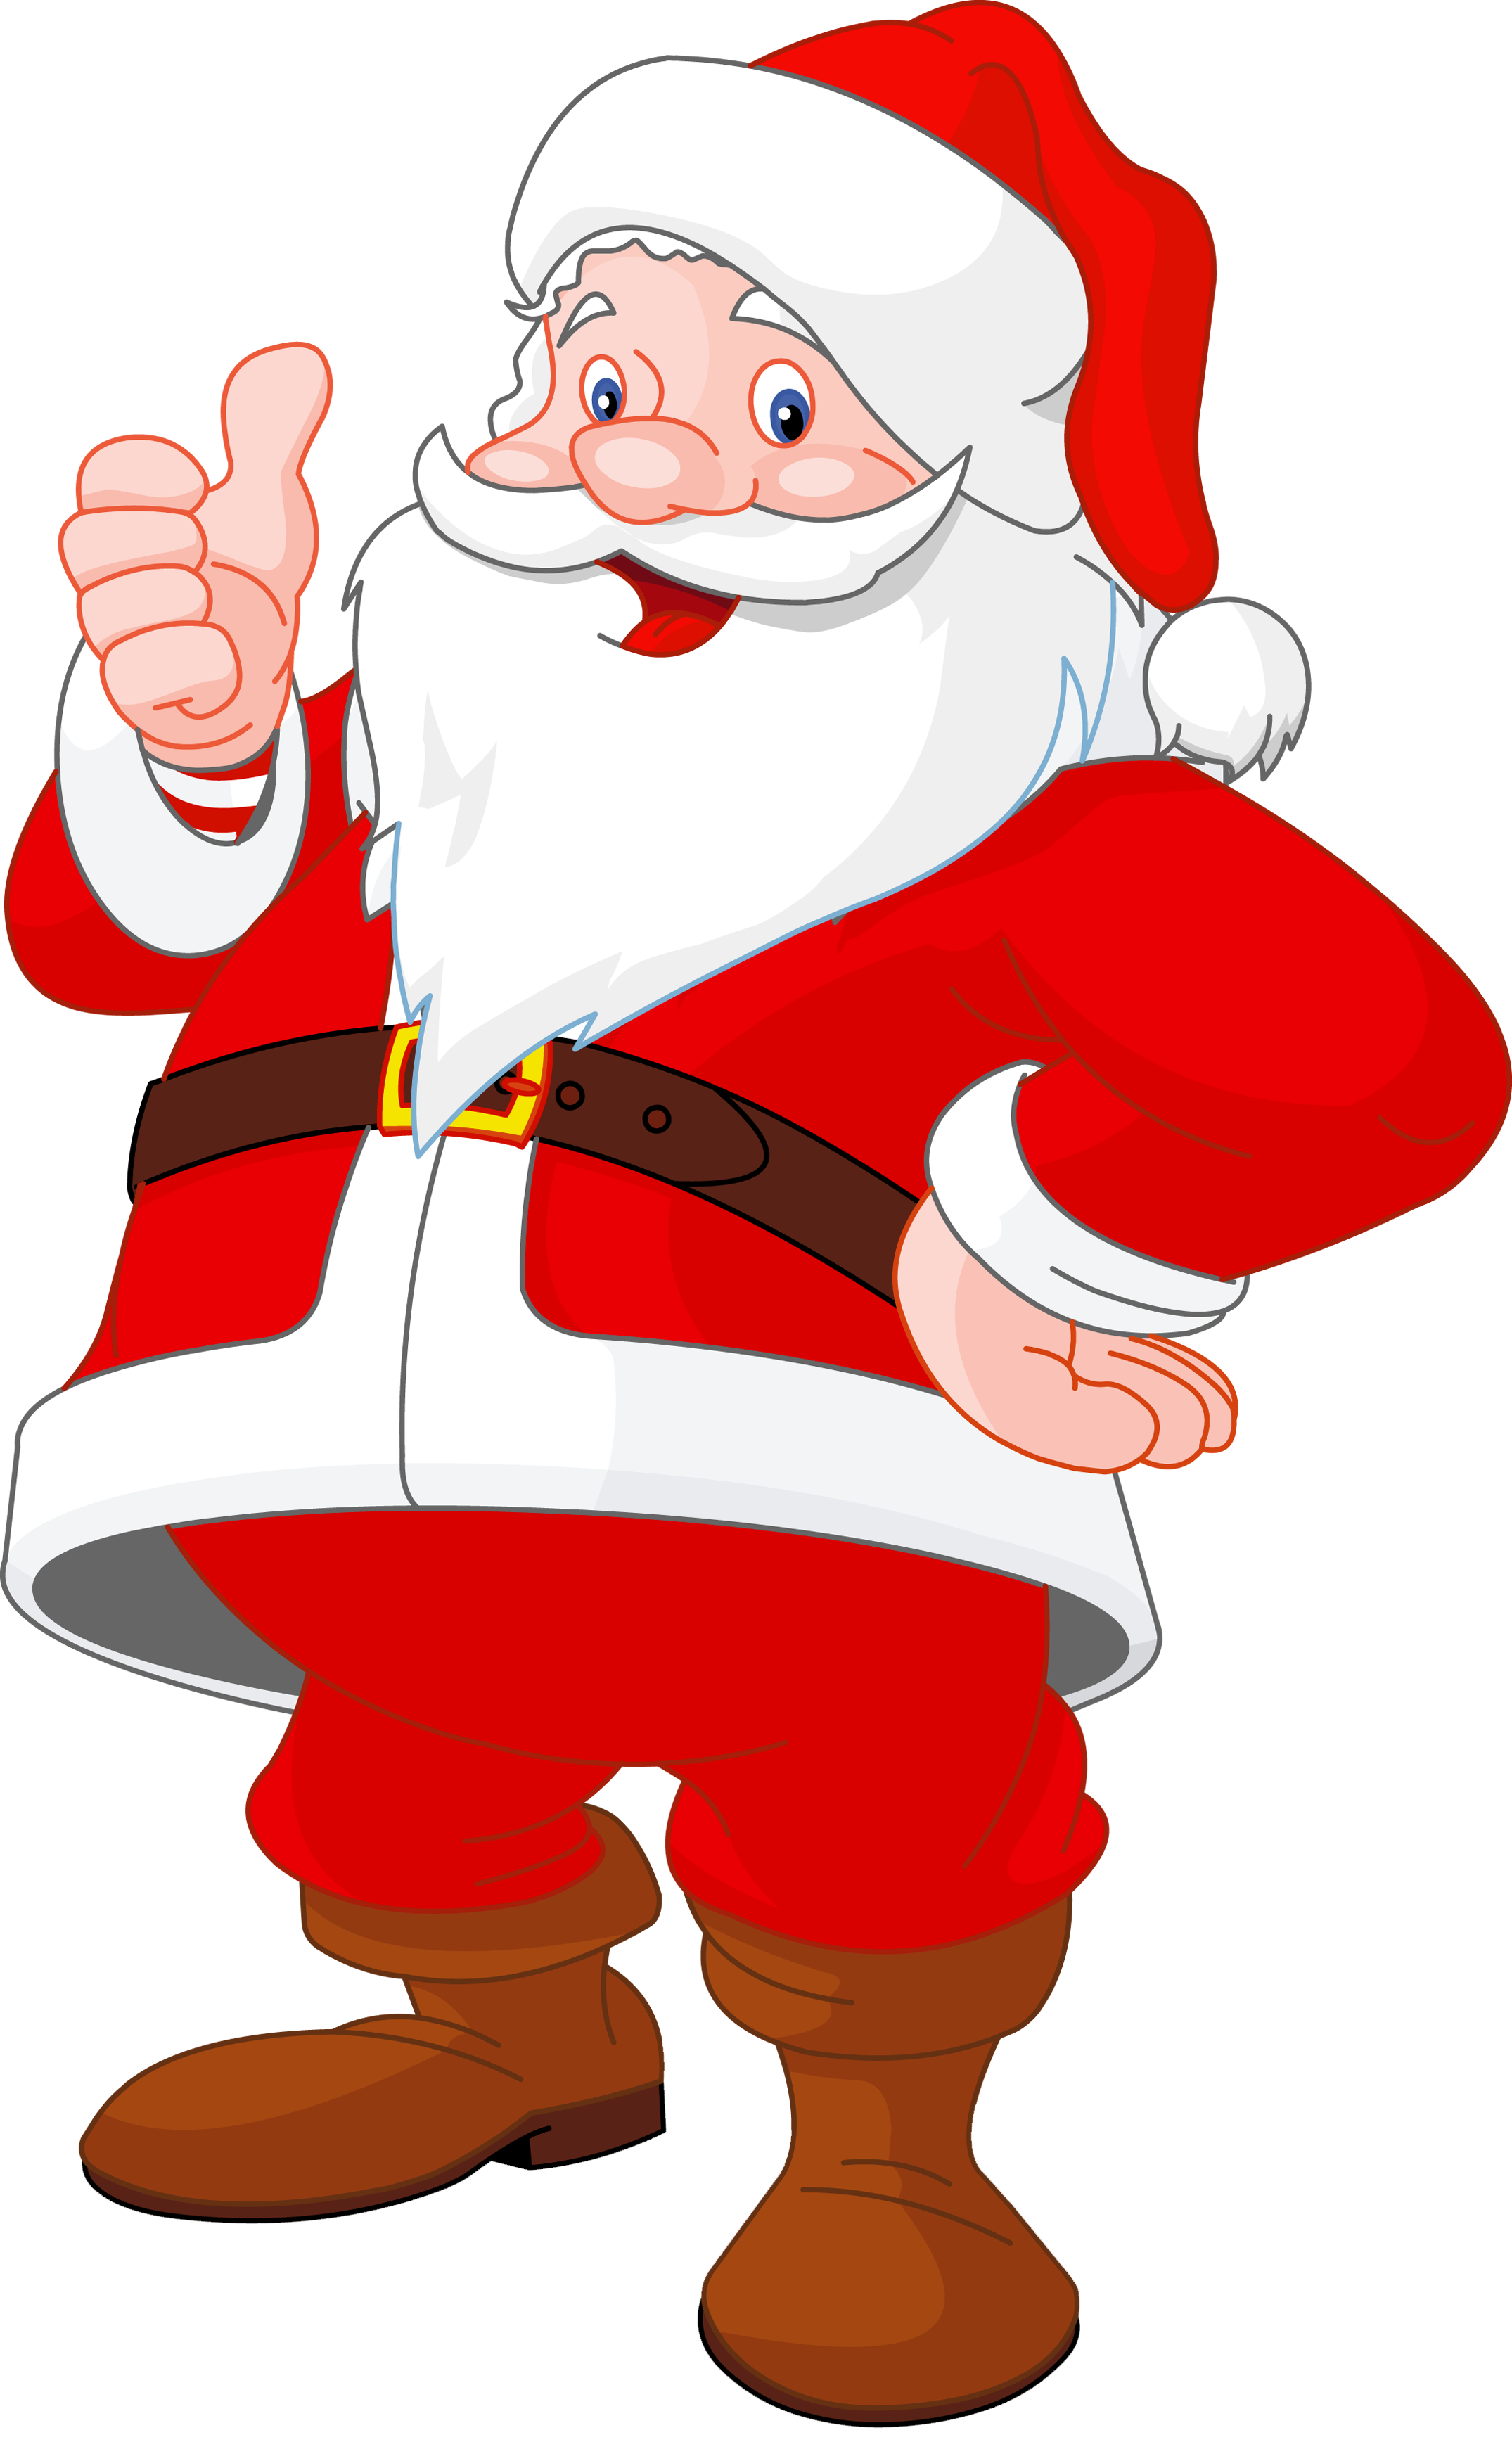 Free santa clause clipart vector free download Pin by georgeta ciachir on materiale | Santa claus clipart, Santa ... vector free download